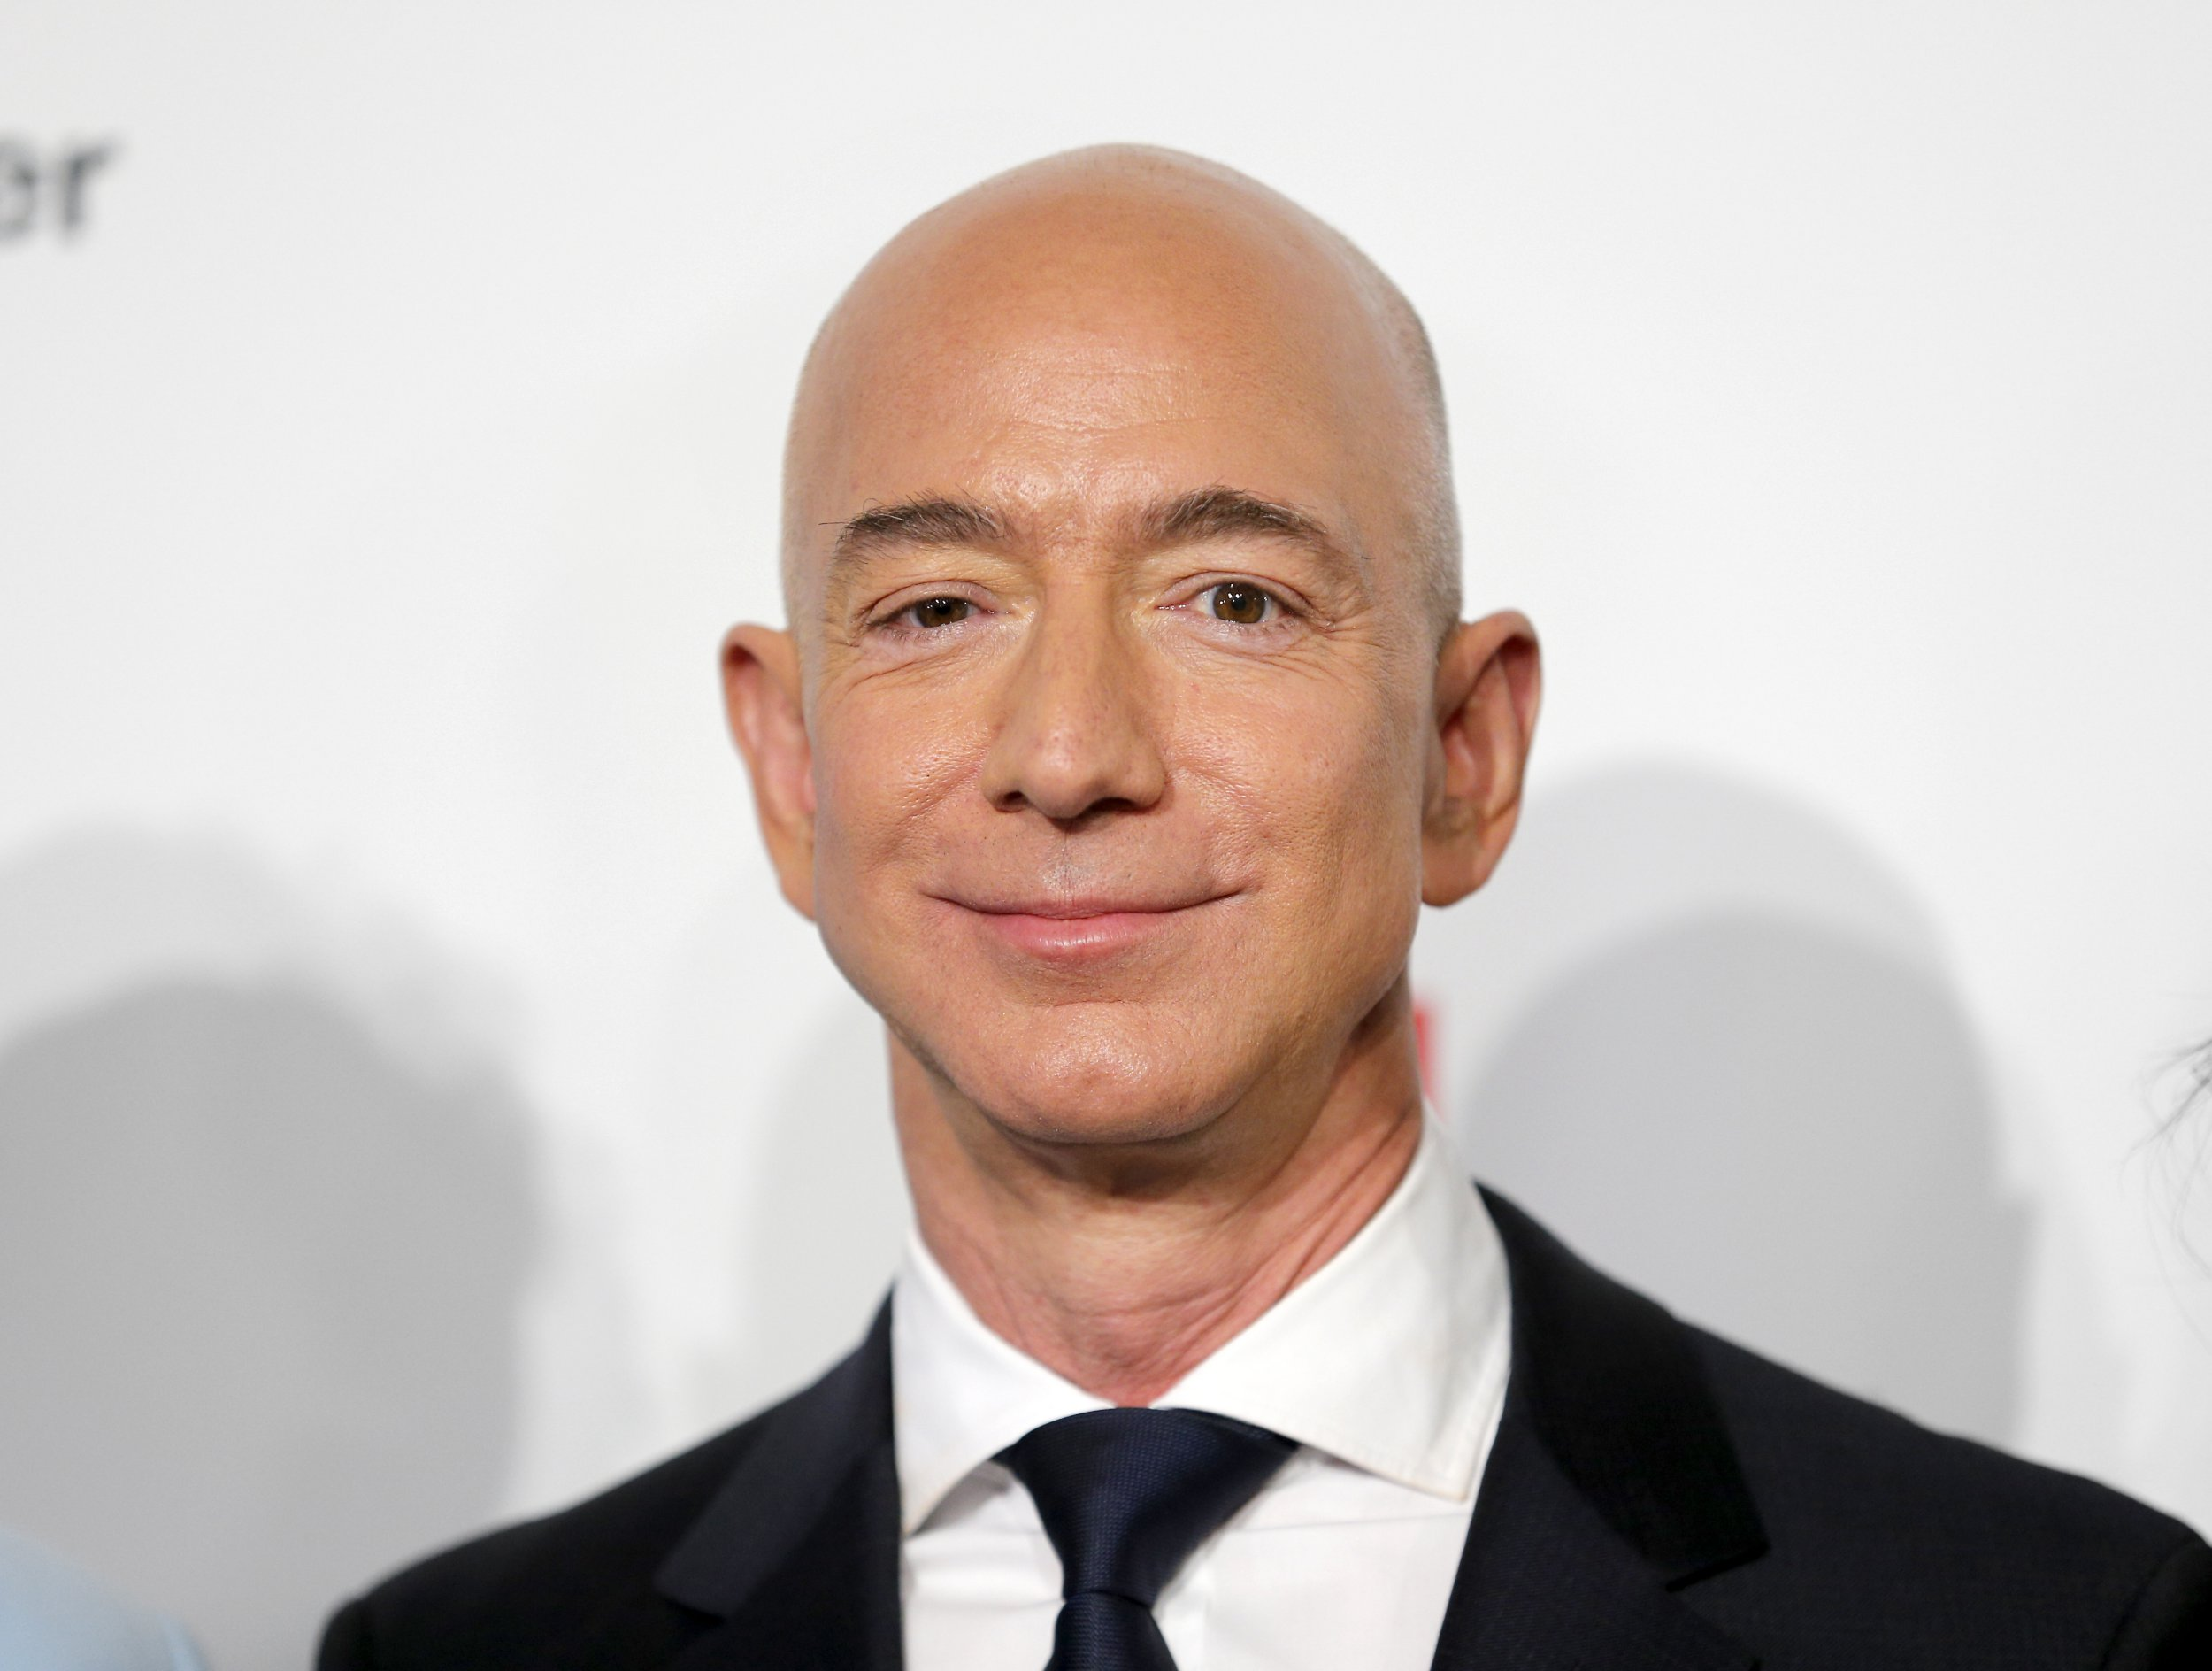 Jeff Bezos age, net worth, ex wife and what happened with Lauren Sanchez and the 'nude photos'